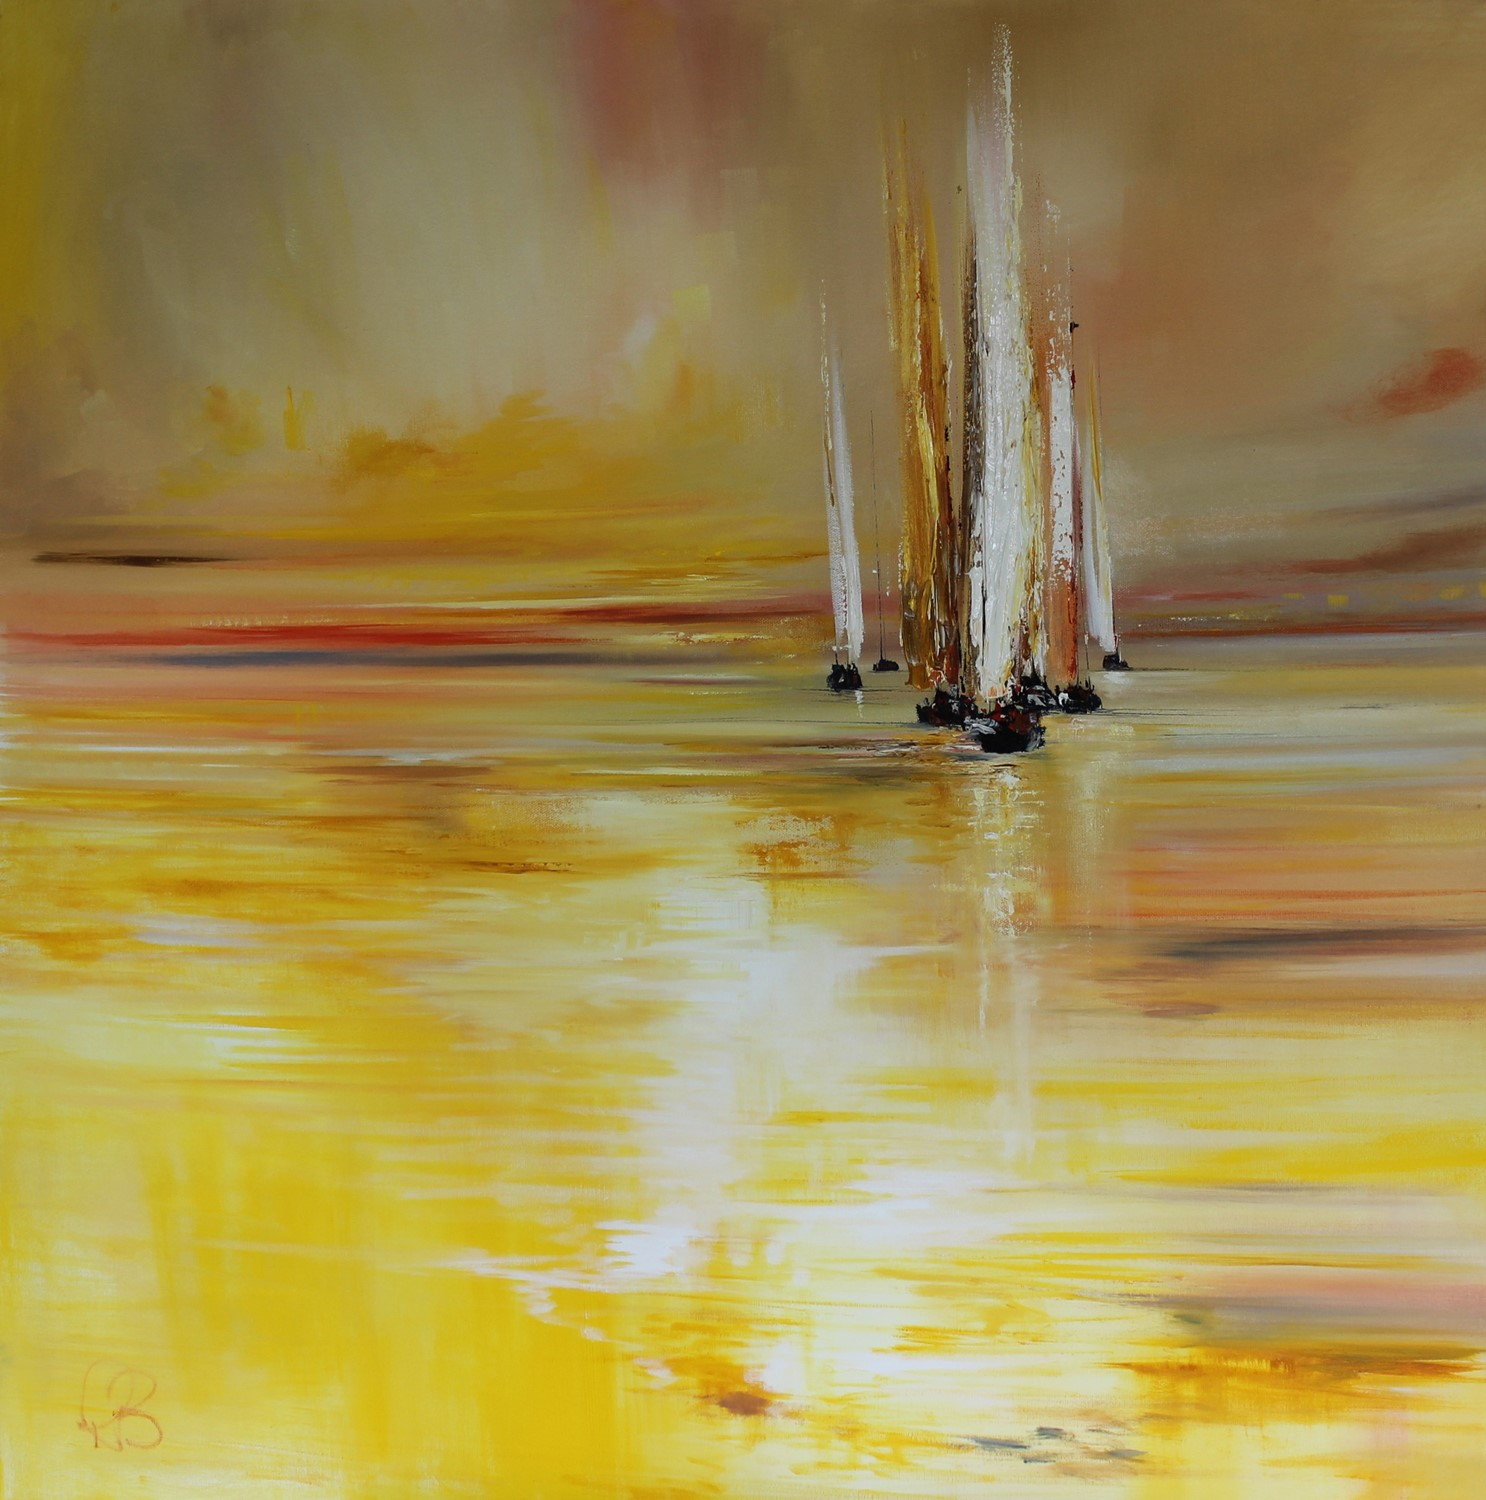 'Yachts and glowing light' by artist Rosanne Barr